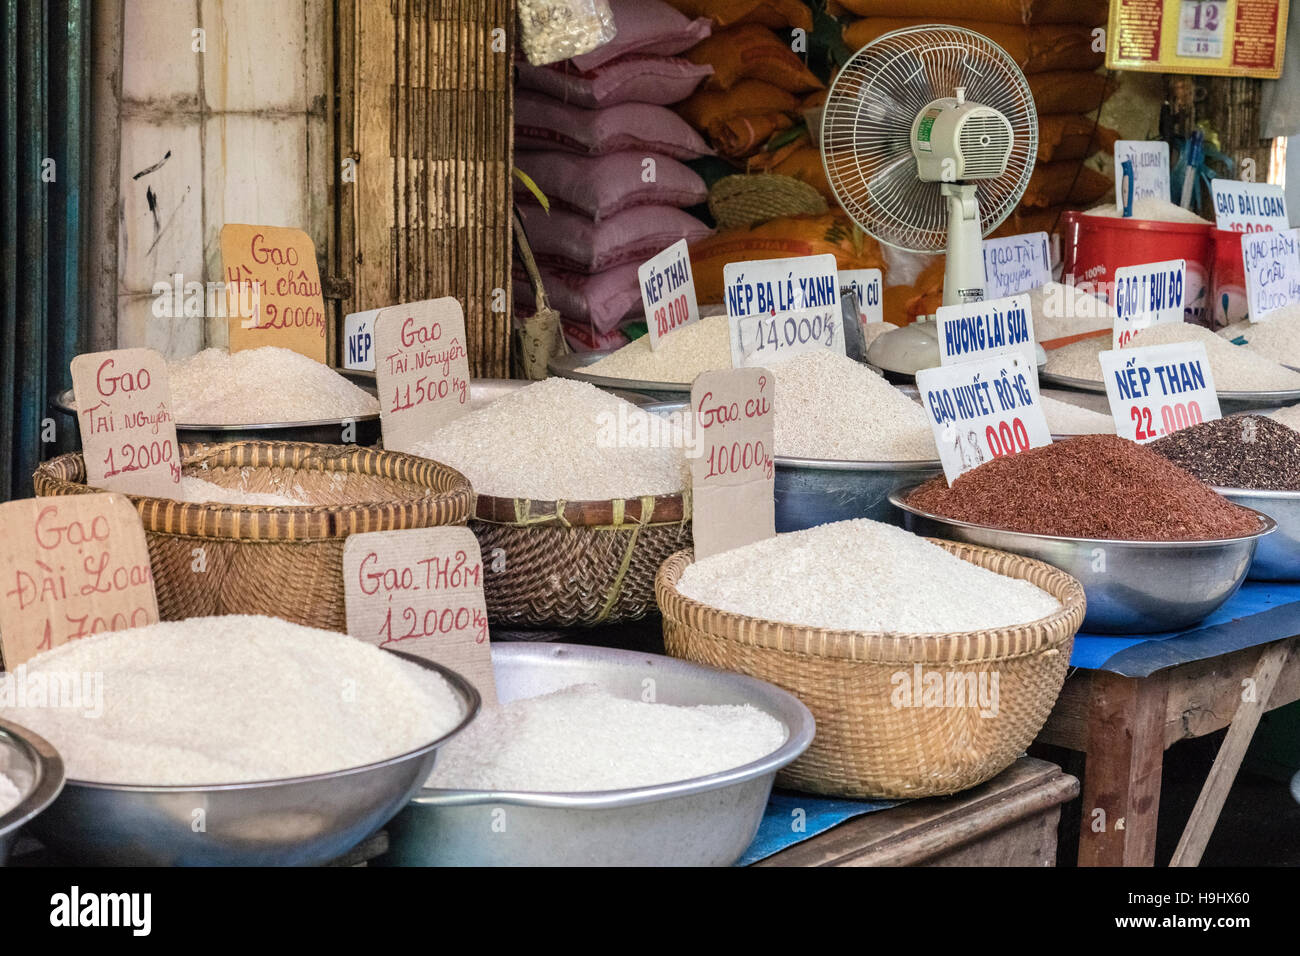 different sorts of rice for sale on a local market in Vinh Long, Mekong Delta, Vietnam, Asia - Stock Image